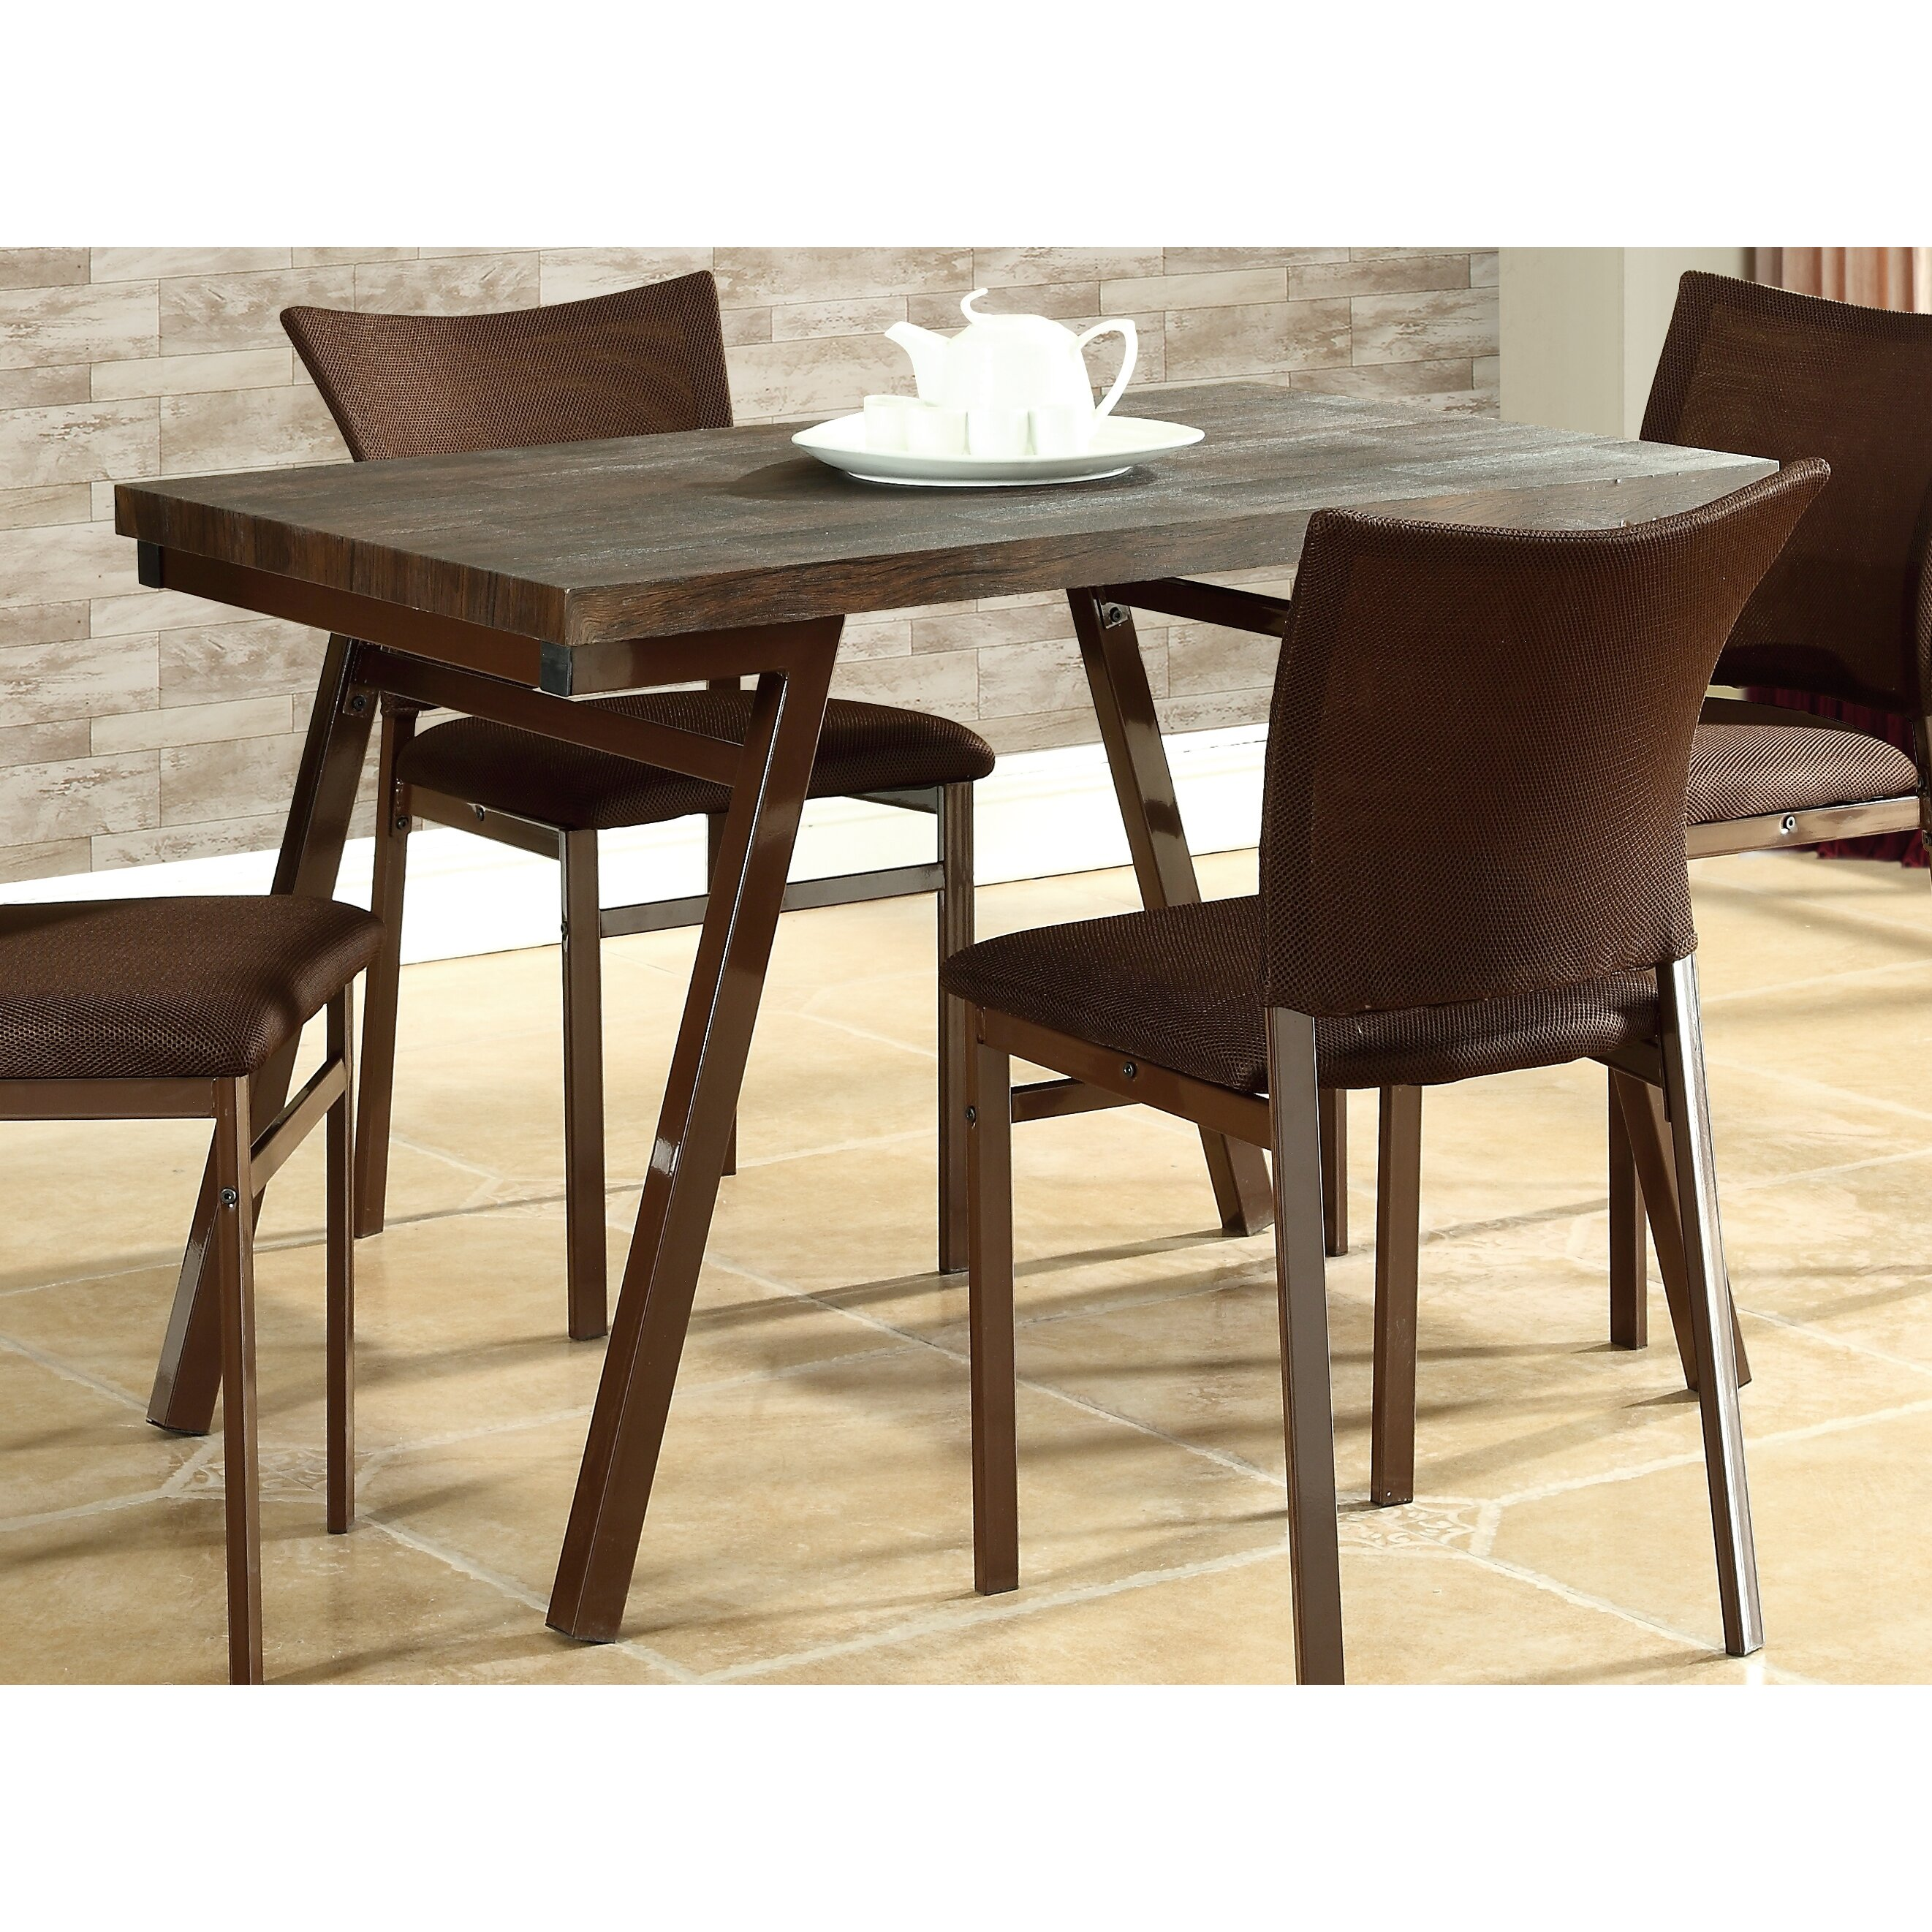 Dining Furniture 4 Seat Kitchen Dining Tables Global Furniture